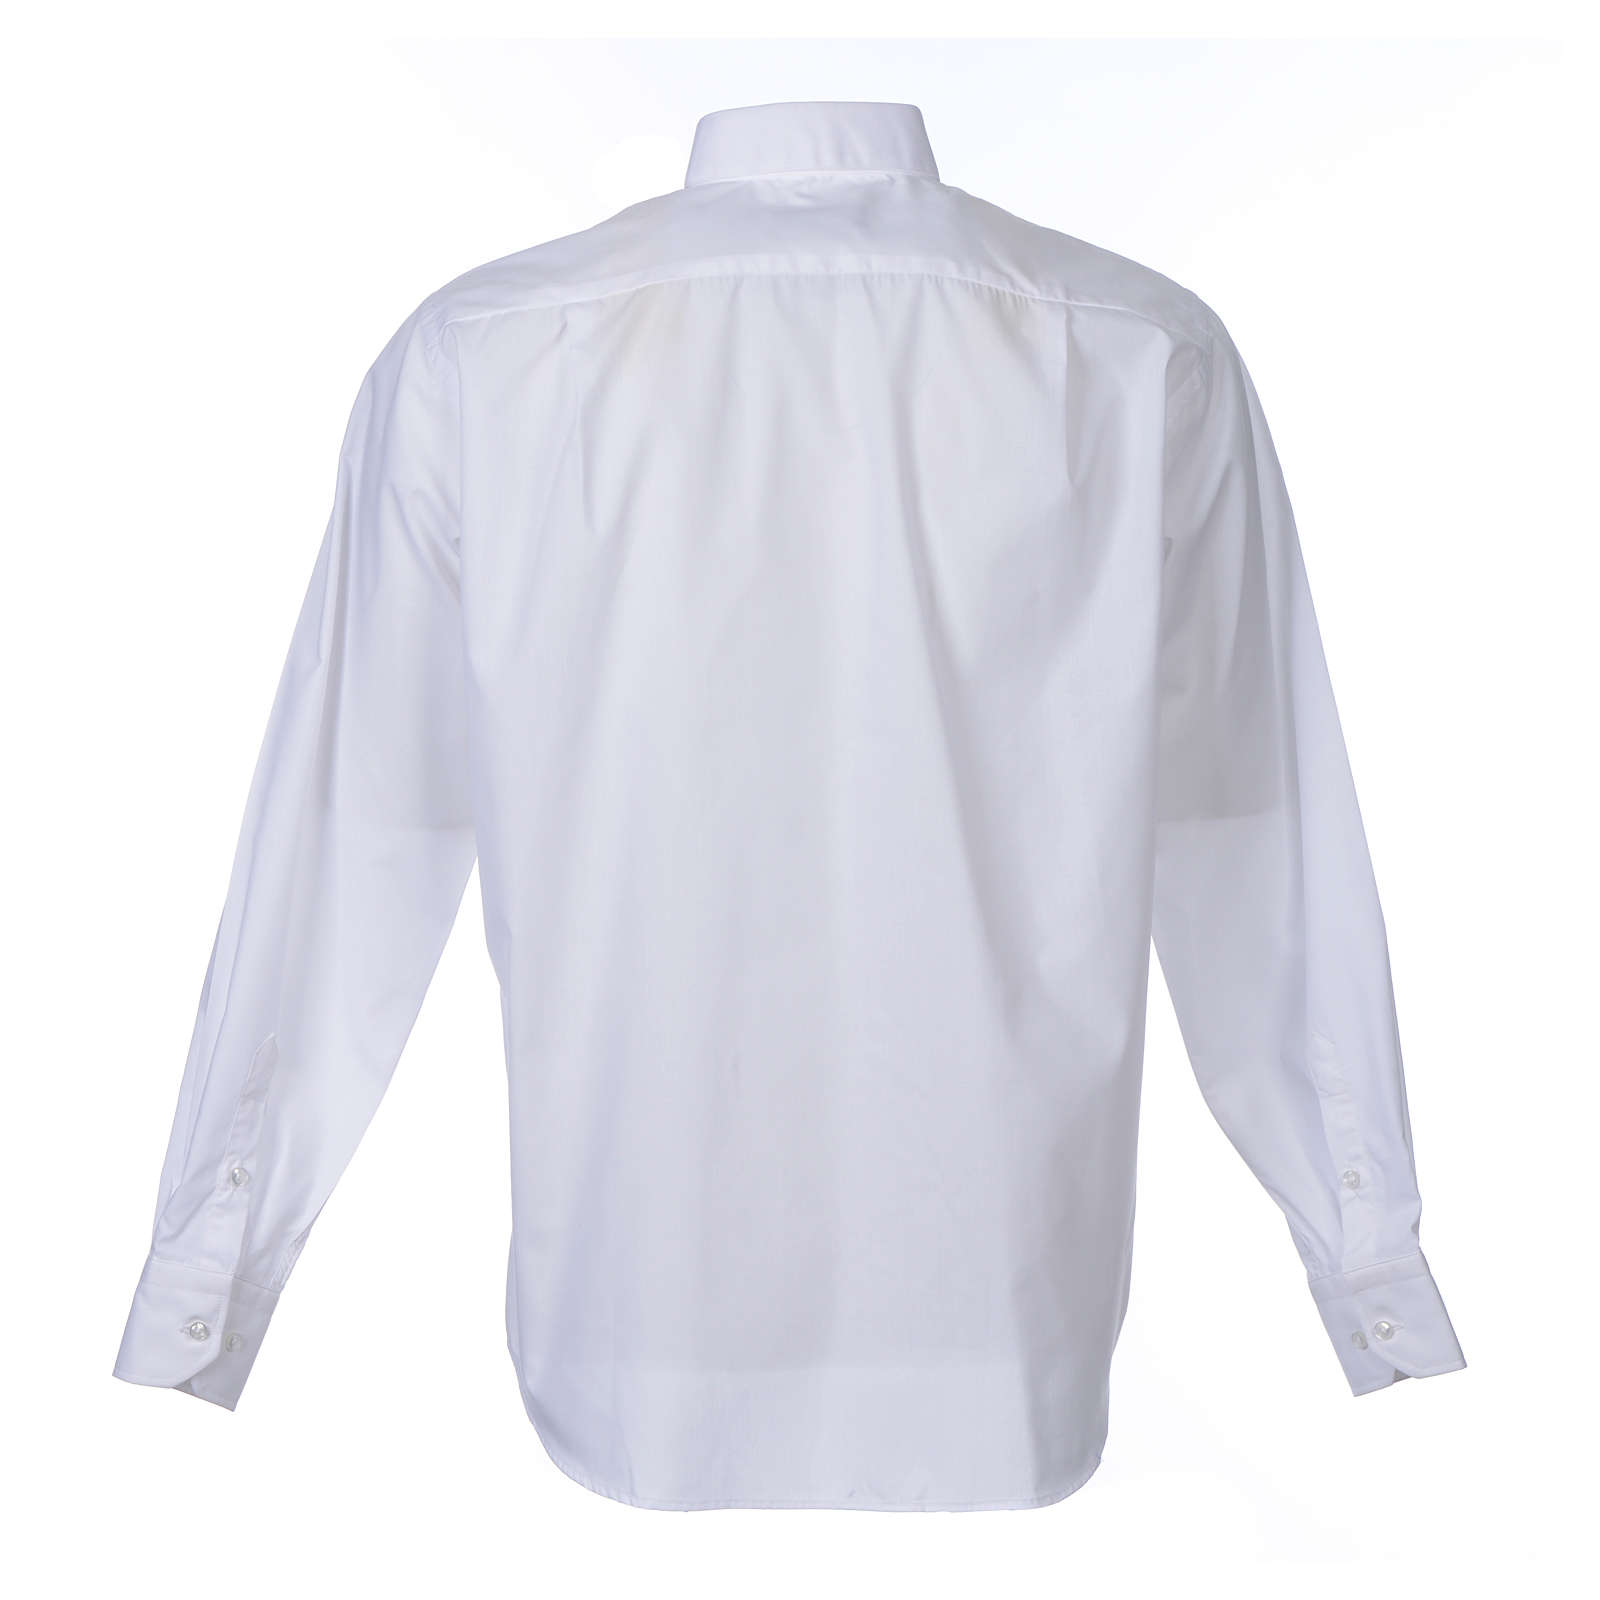 Catholic Clergy White Shirt long sleeve solid color mixed cotton 4